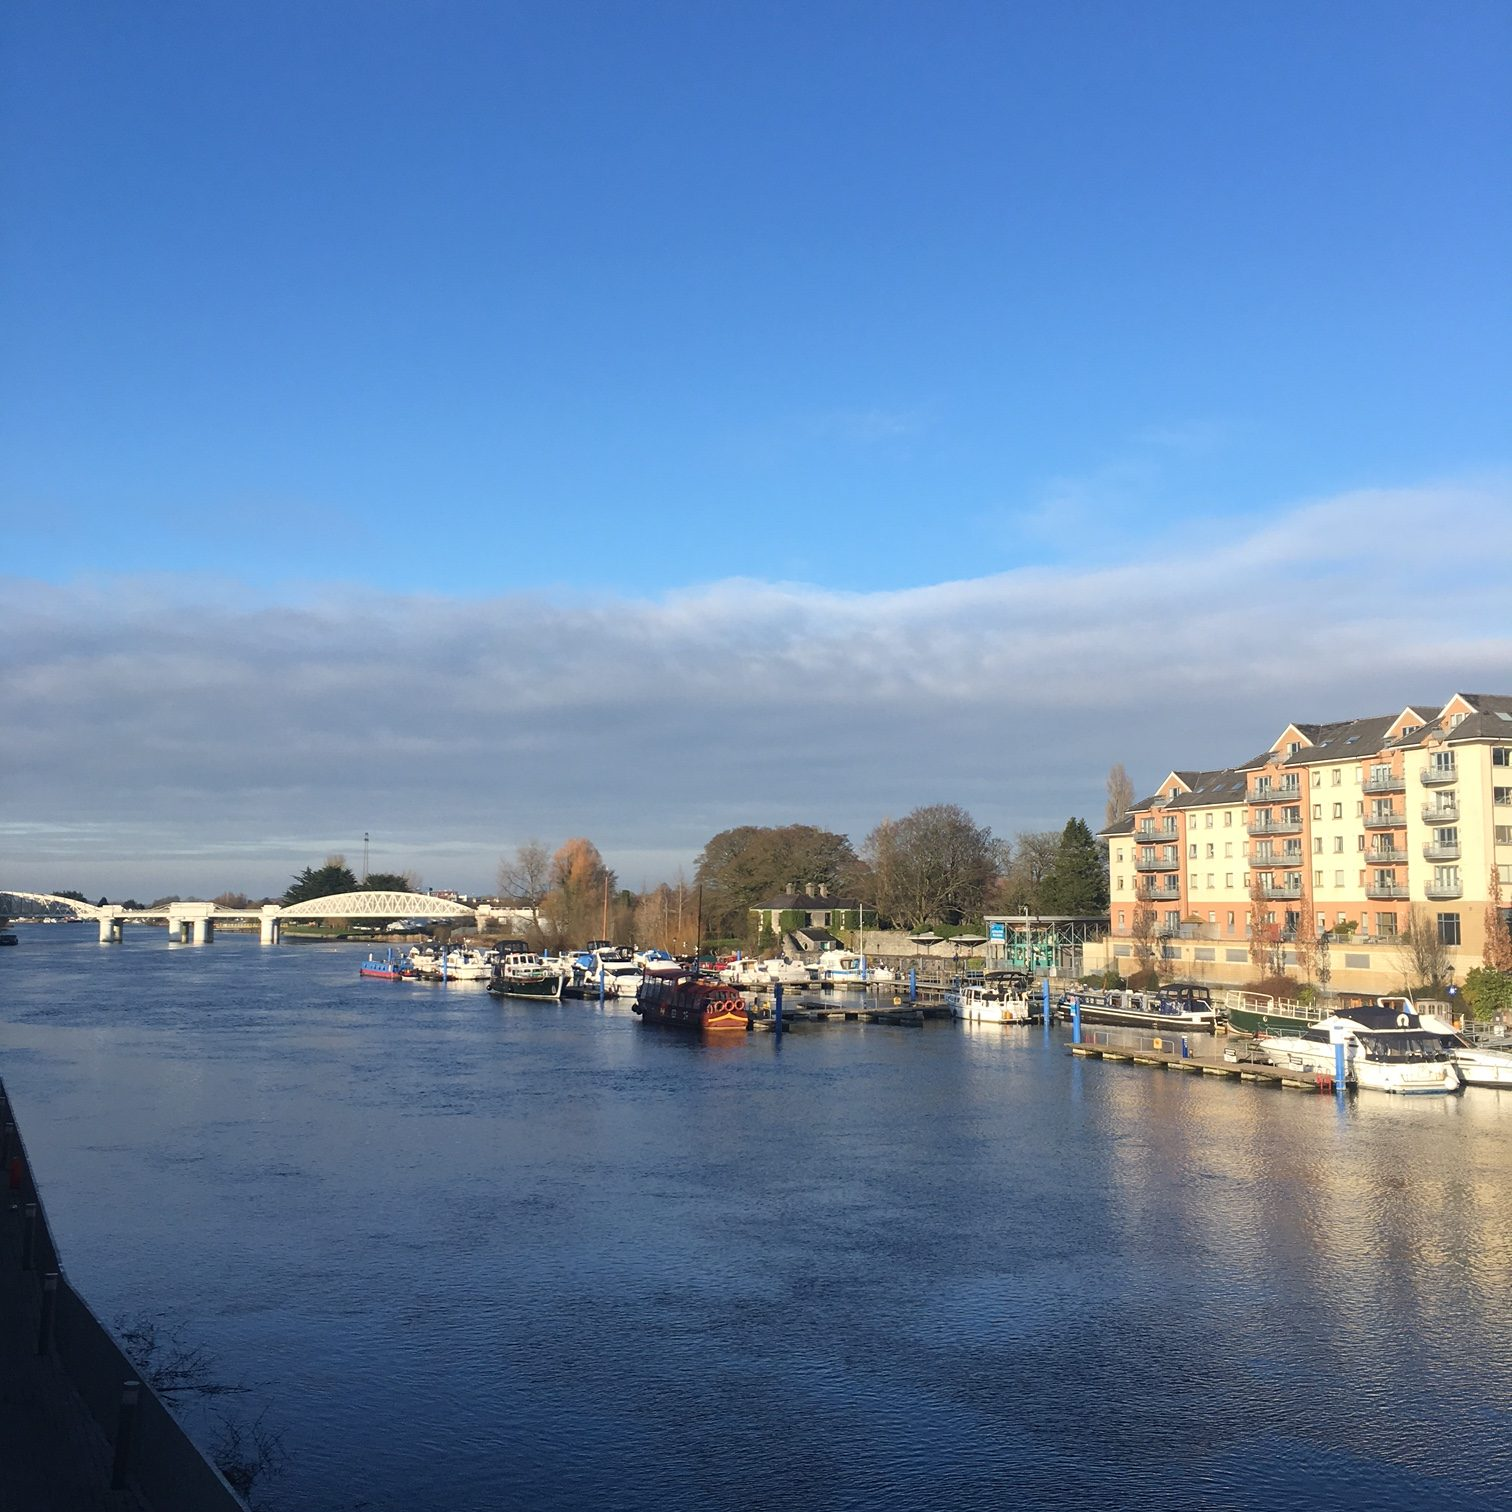 River Shannon, Athlone, county Westmeath